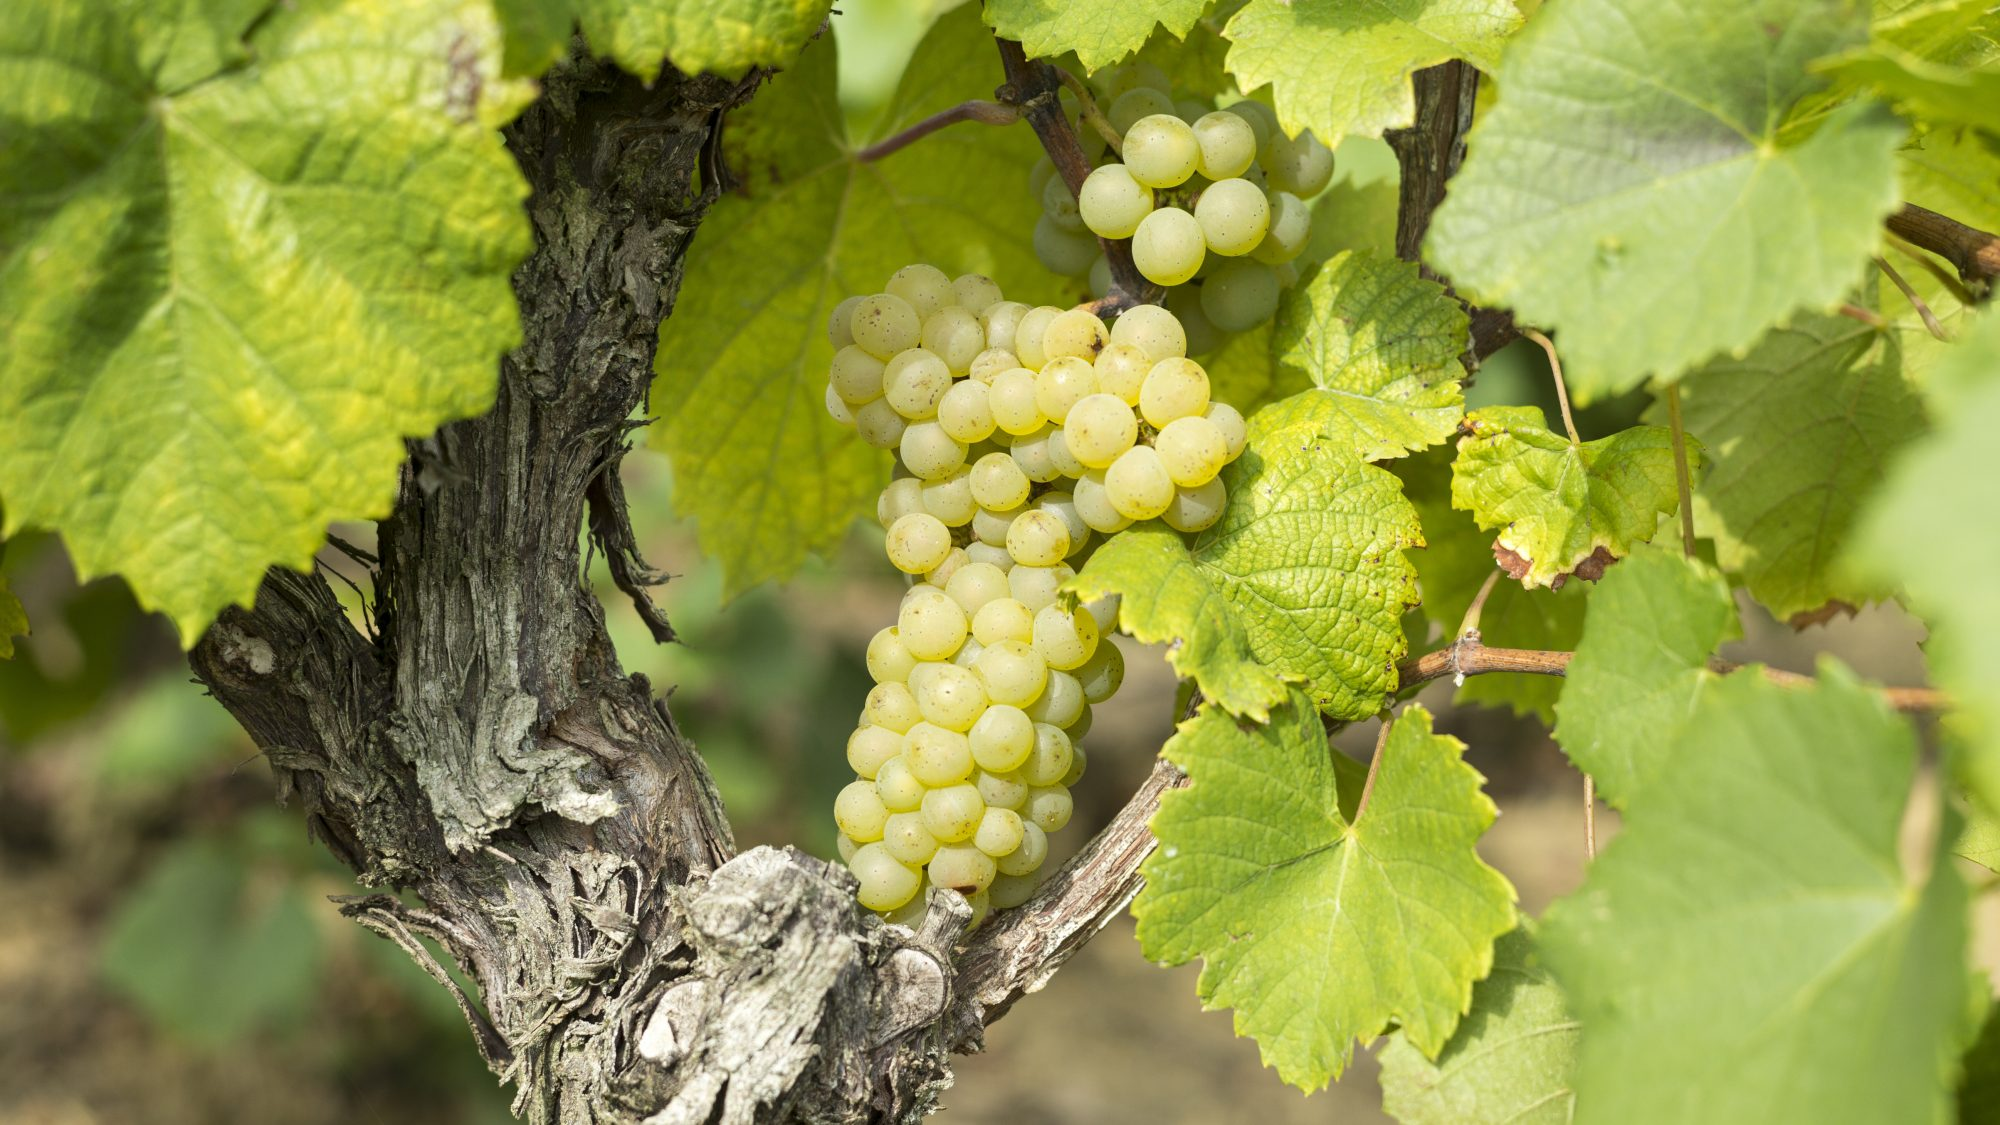 FRANCE, SEPTEMBER 11:   Bunches of ripe Muscadet grapes on ancient vine at vineyard Route Touristique du Vignobles Nantais on September 11, 2015 in Loire Valley, France.  (Photo by Tim Graham/Getty Images)